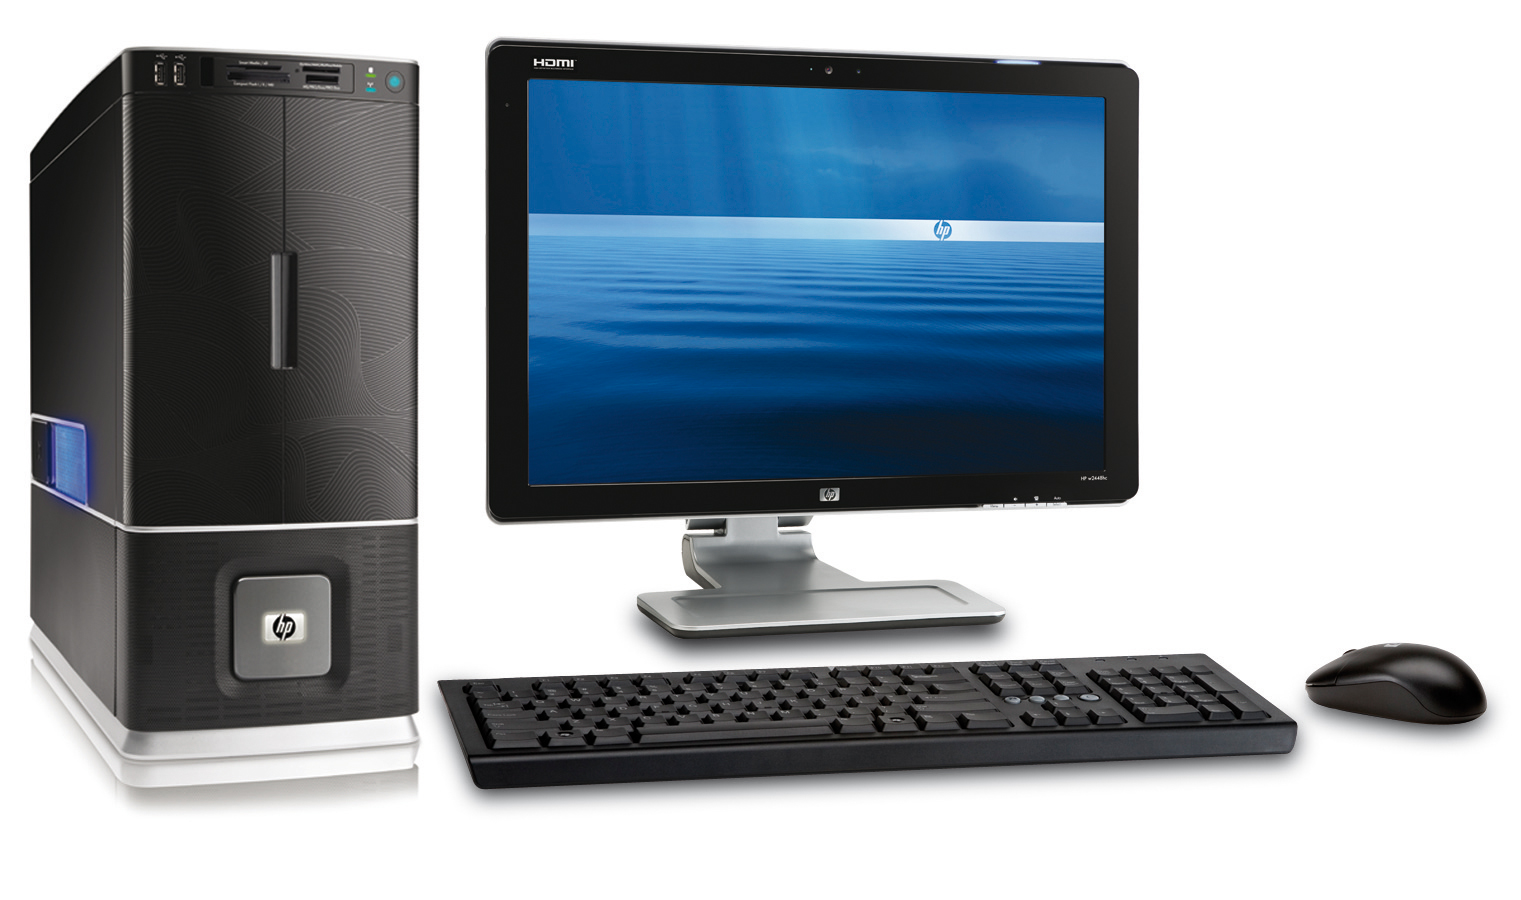 pc computers